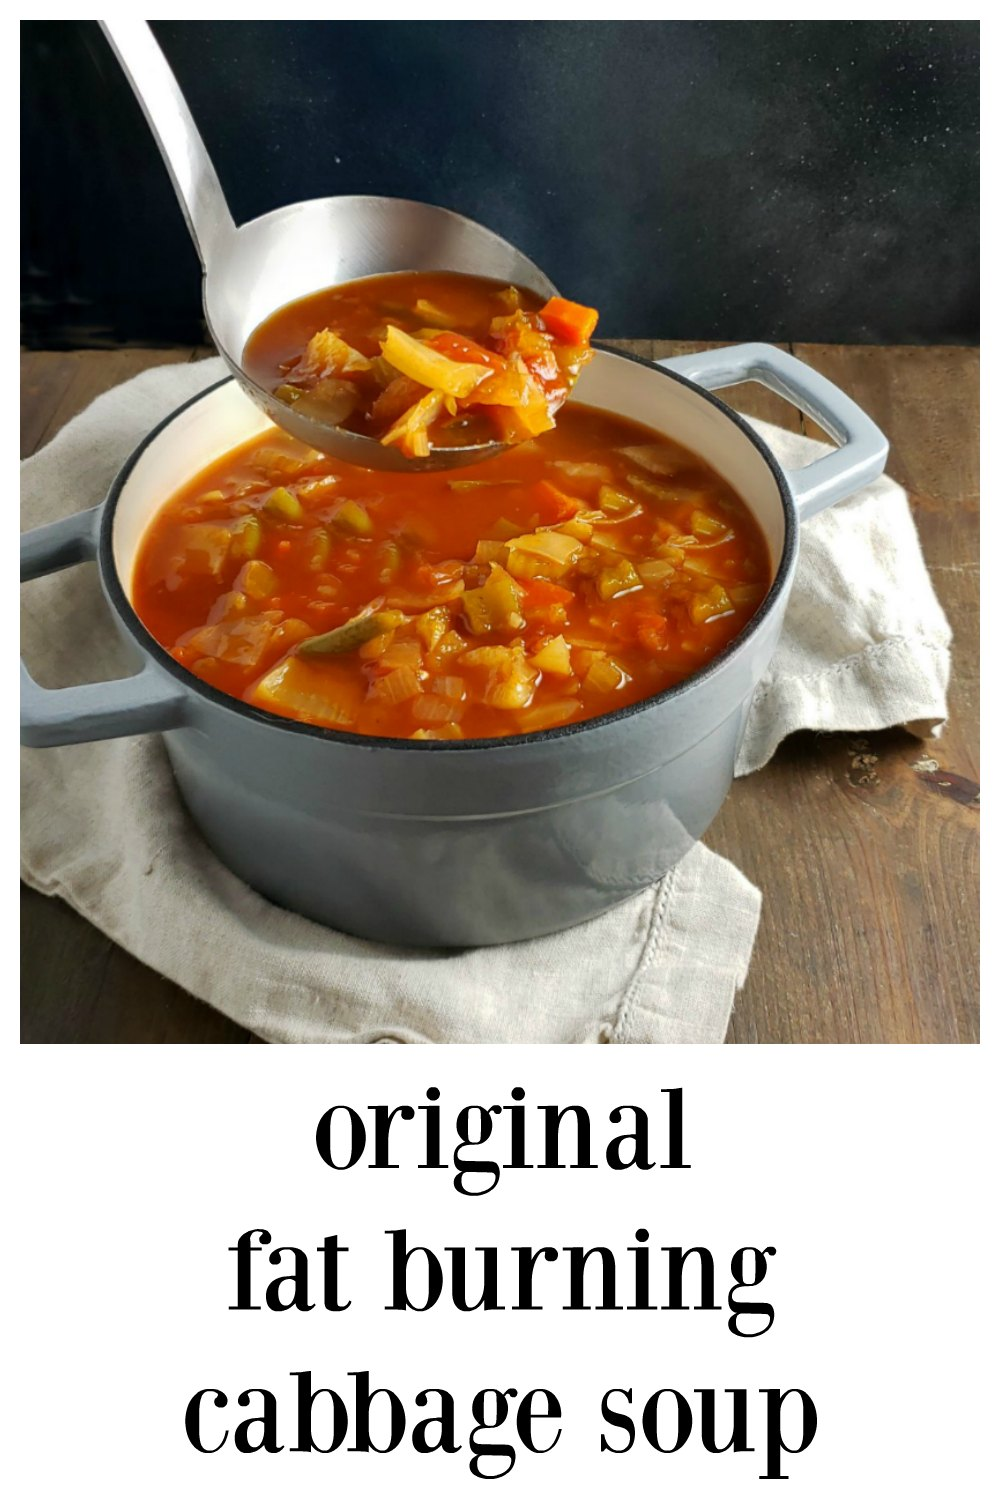 Original Fat Burning Cabbage Soup might have been part of a diet but is fantastic, quick, easy & absolutely delish soup - and it doesn't hurt that it's healthy! Makes a lot & freezes well. Great for Meal Prep. #FatBurningSoup #OriginalFatBurningSoup #OriginalFatBurningCabbageSoup #CabbageSoup